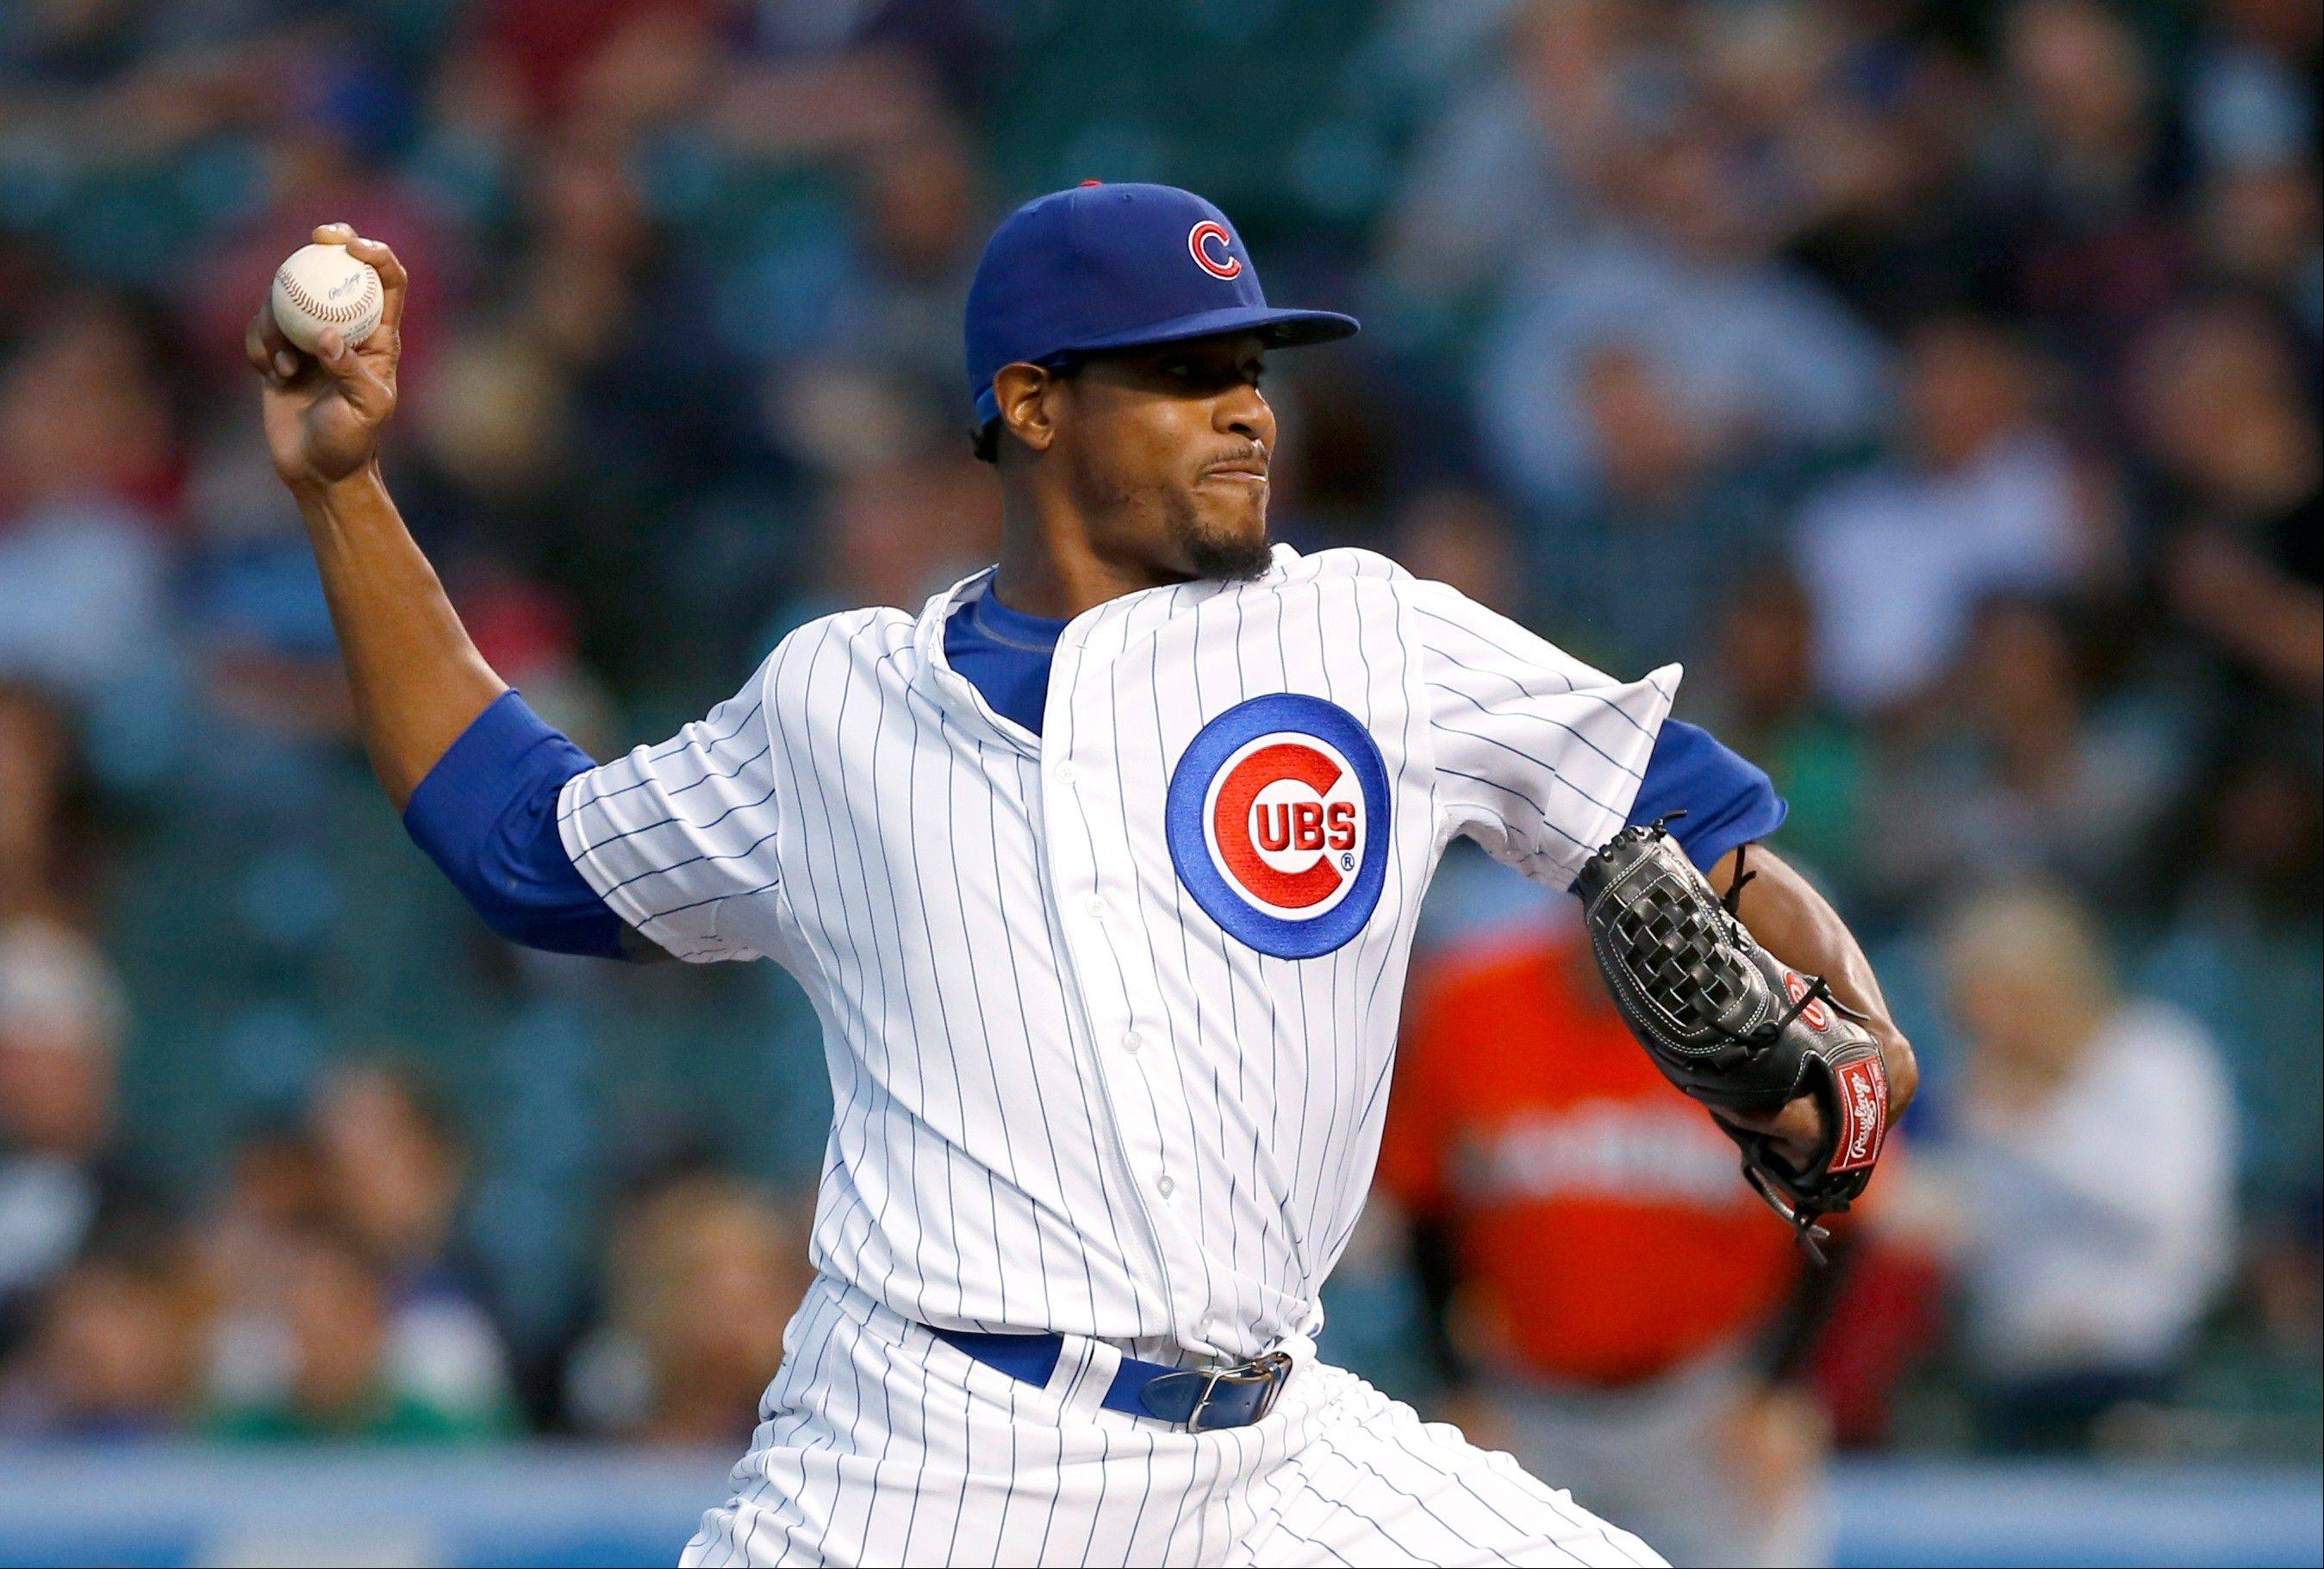 Cubs starting pitcher Edwin Jackson lasted only 5 innings Tuesday night as he record fell to 7-15 with the loss to the Marlins.